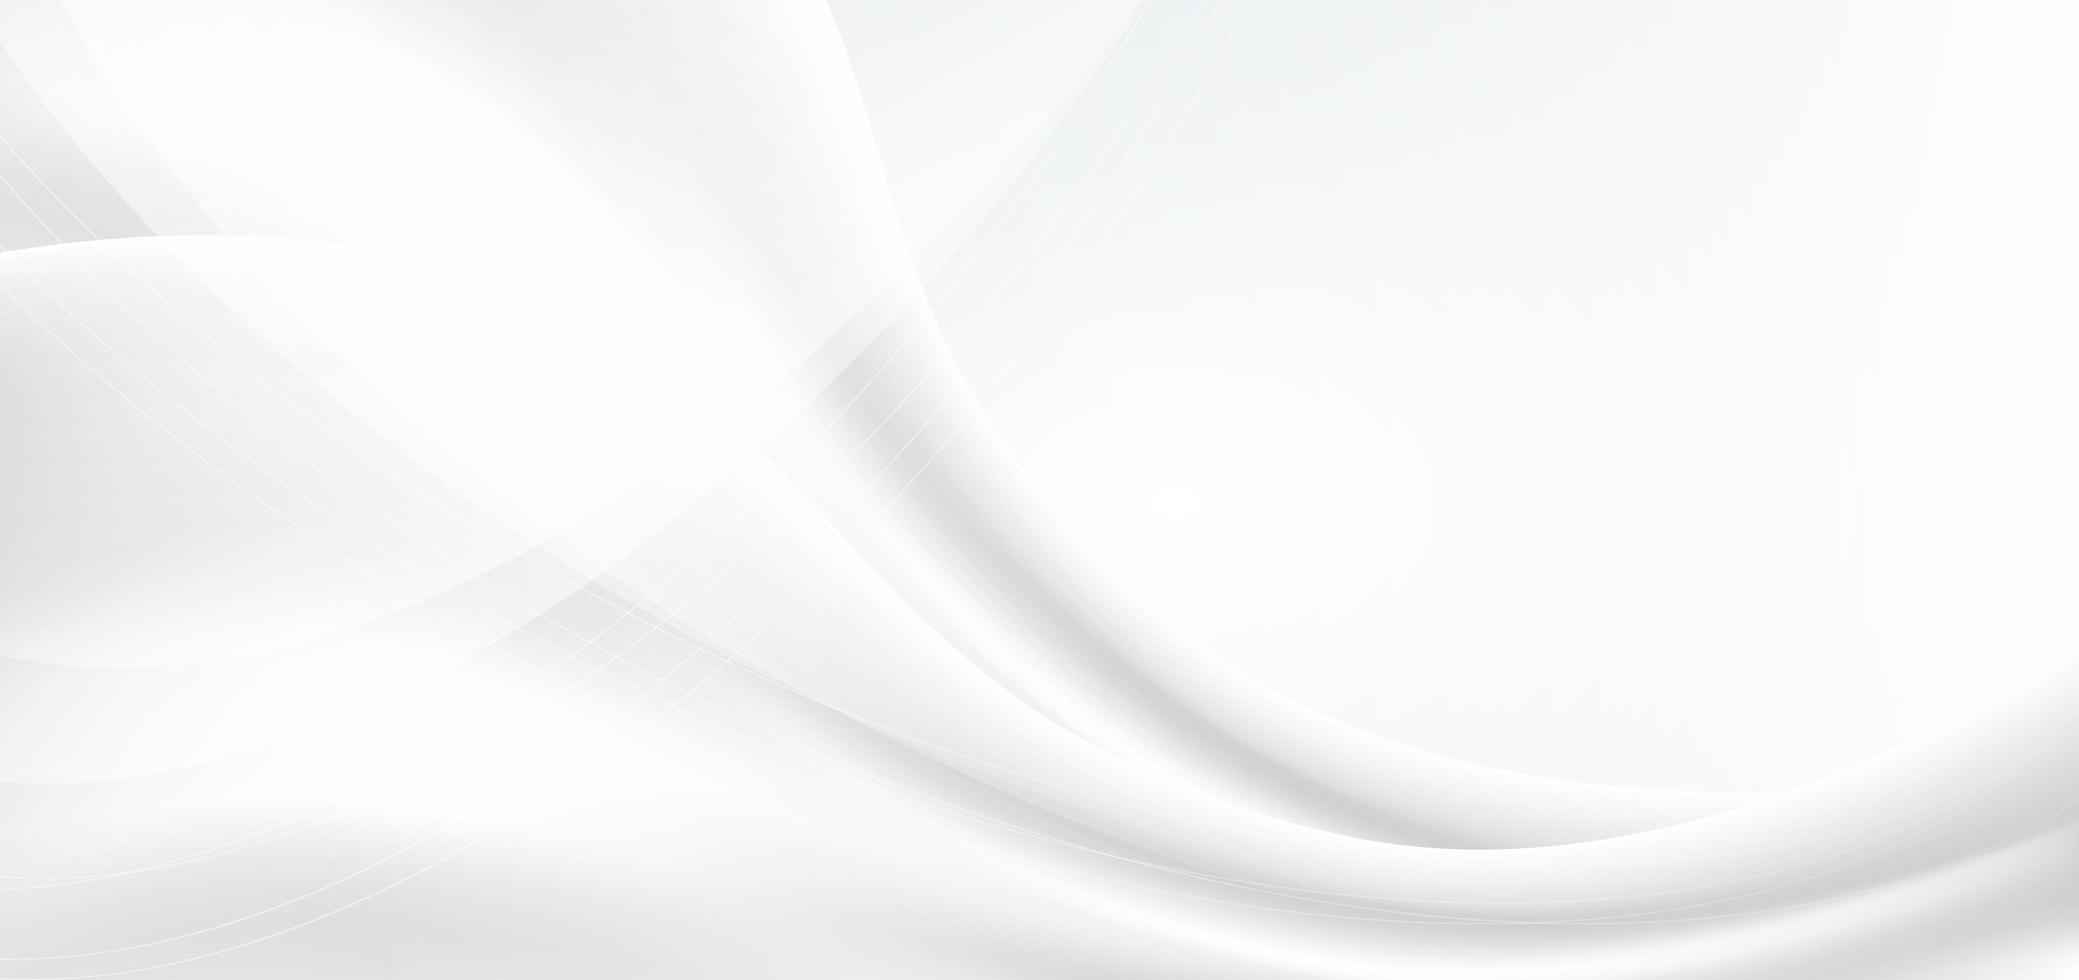 White and Grey Waves Background vector